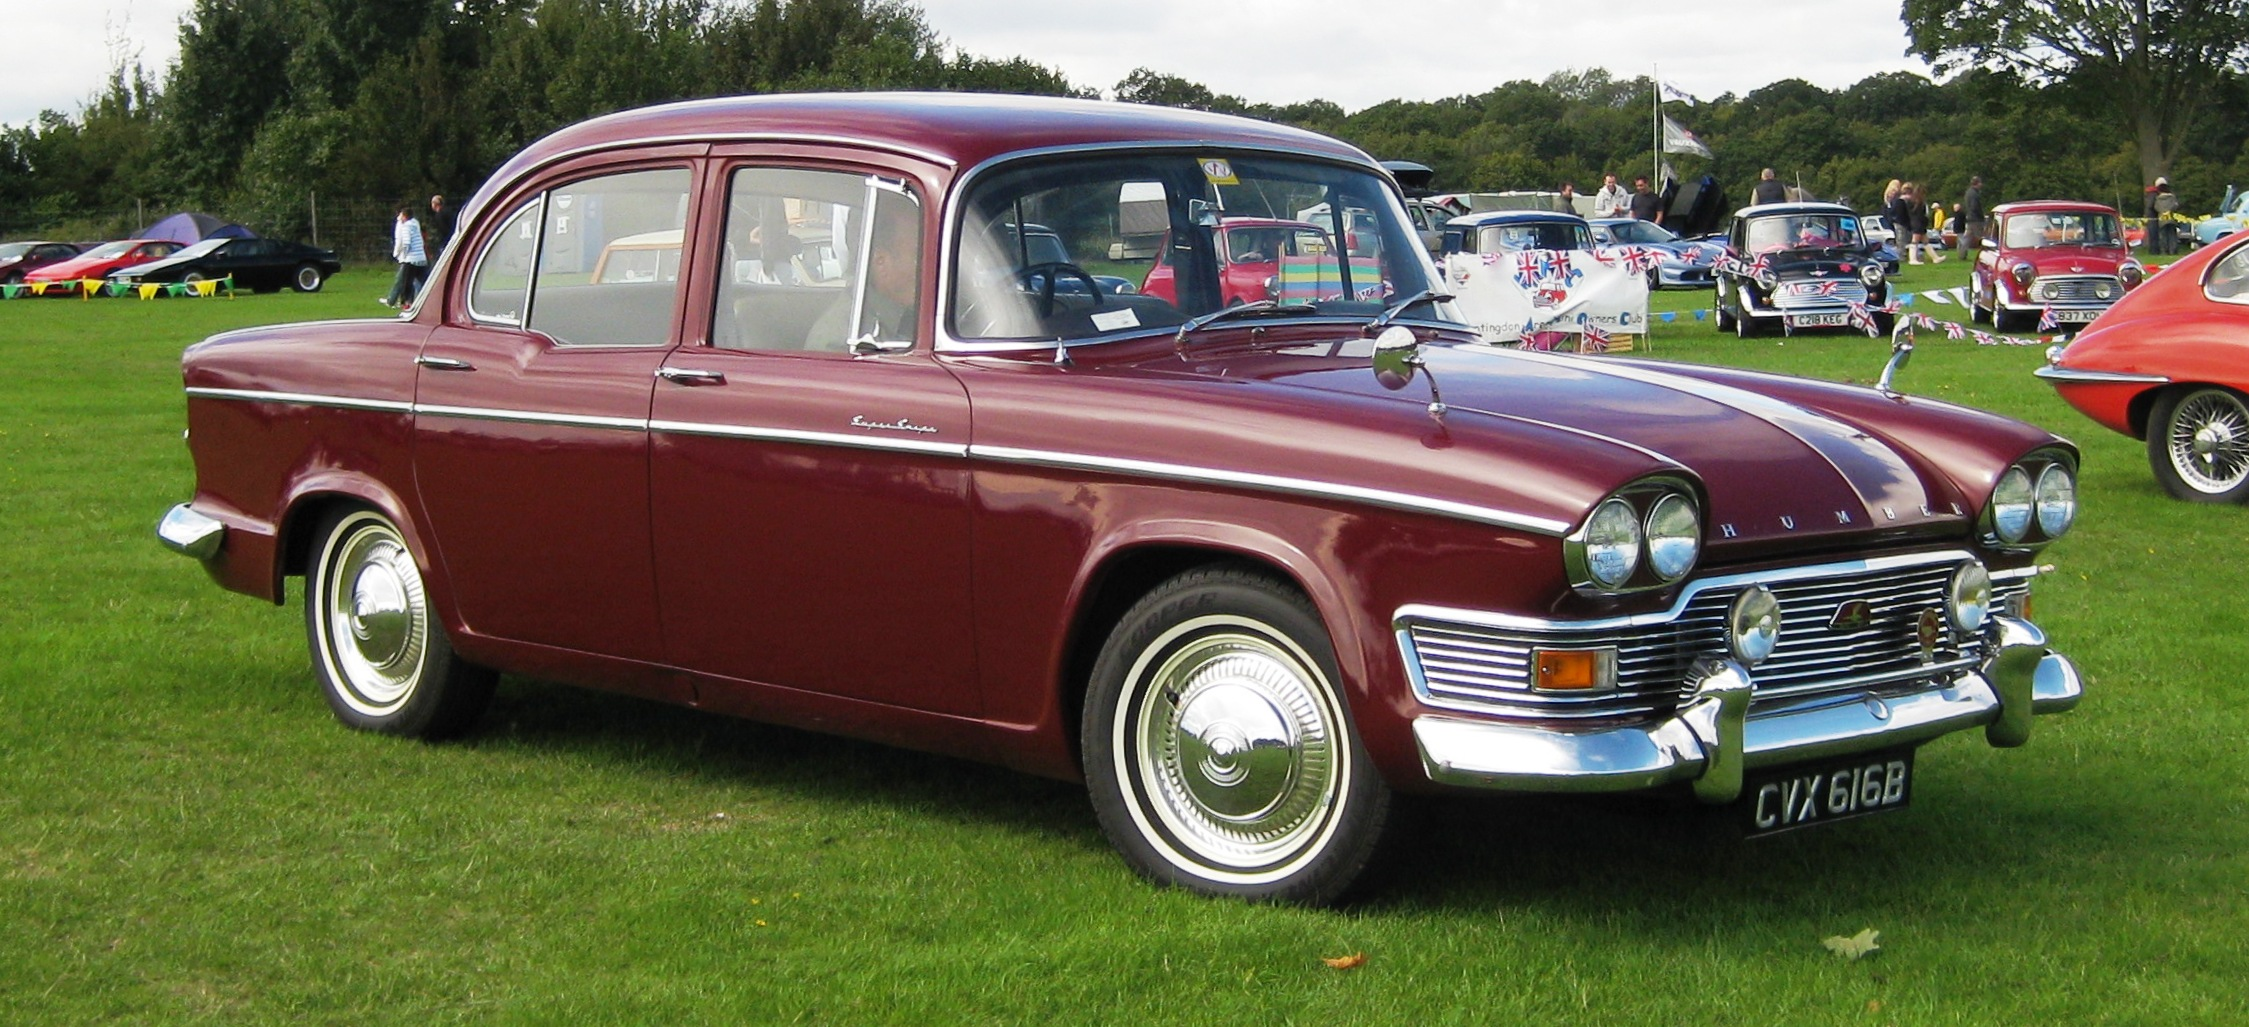 1964 Humber Super Snipe Series 4 Carsaddiction Com